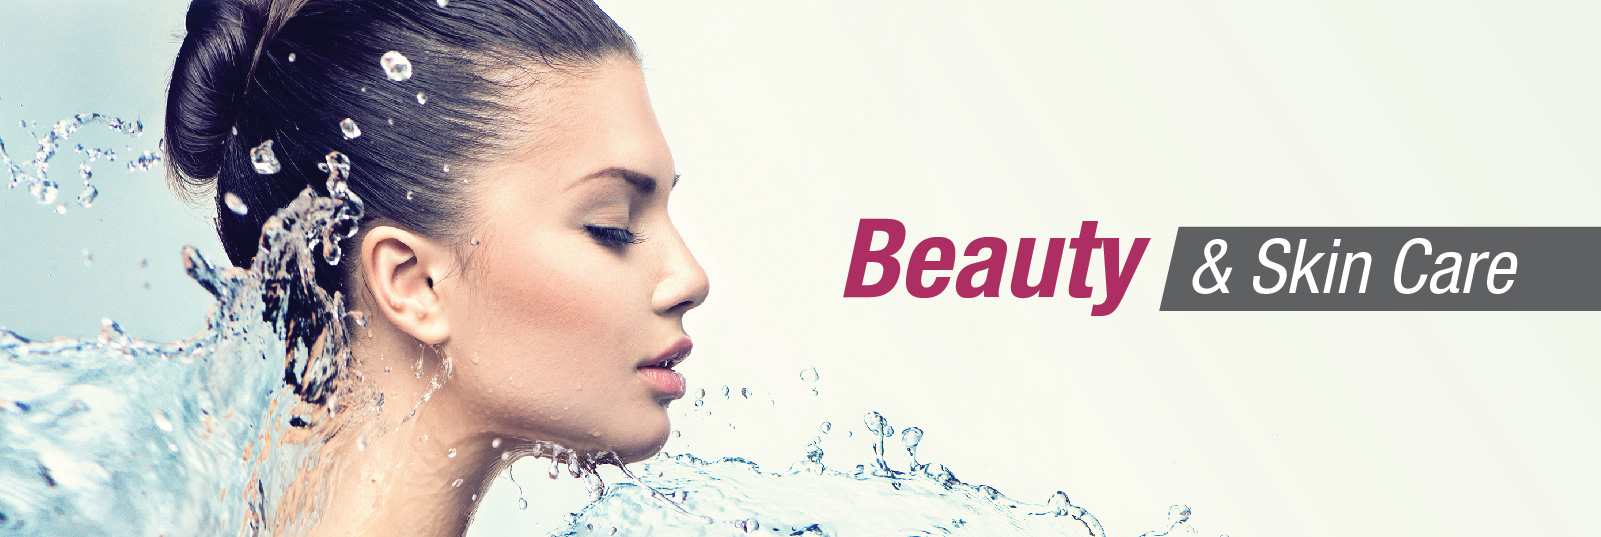 Beauty Skin Care Banner